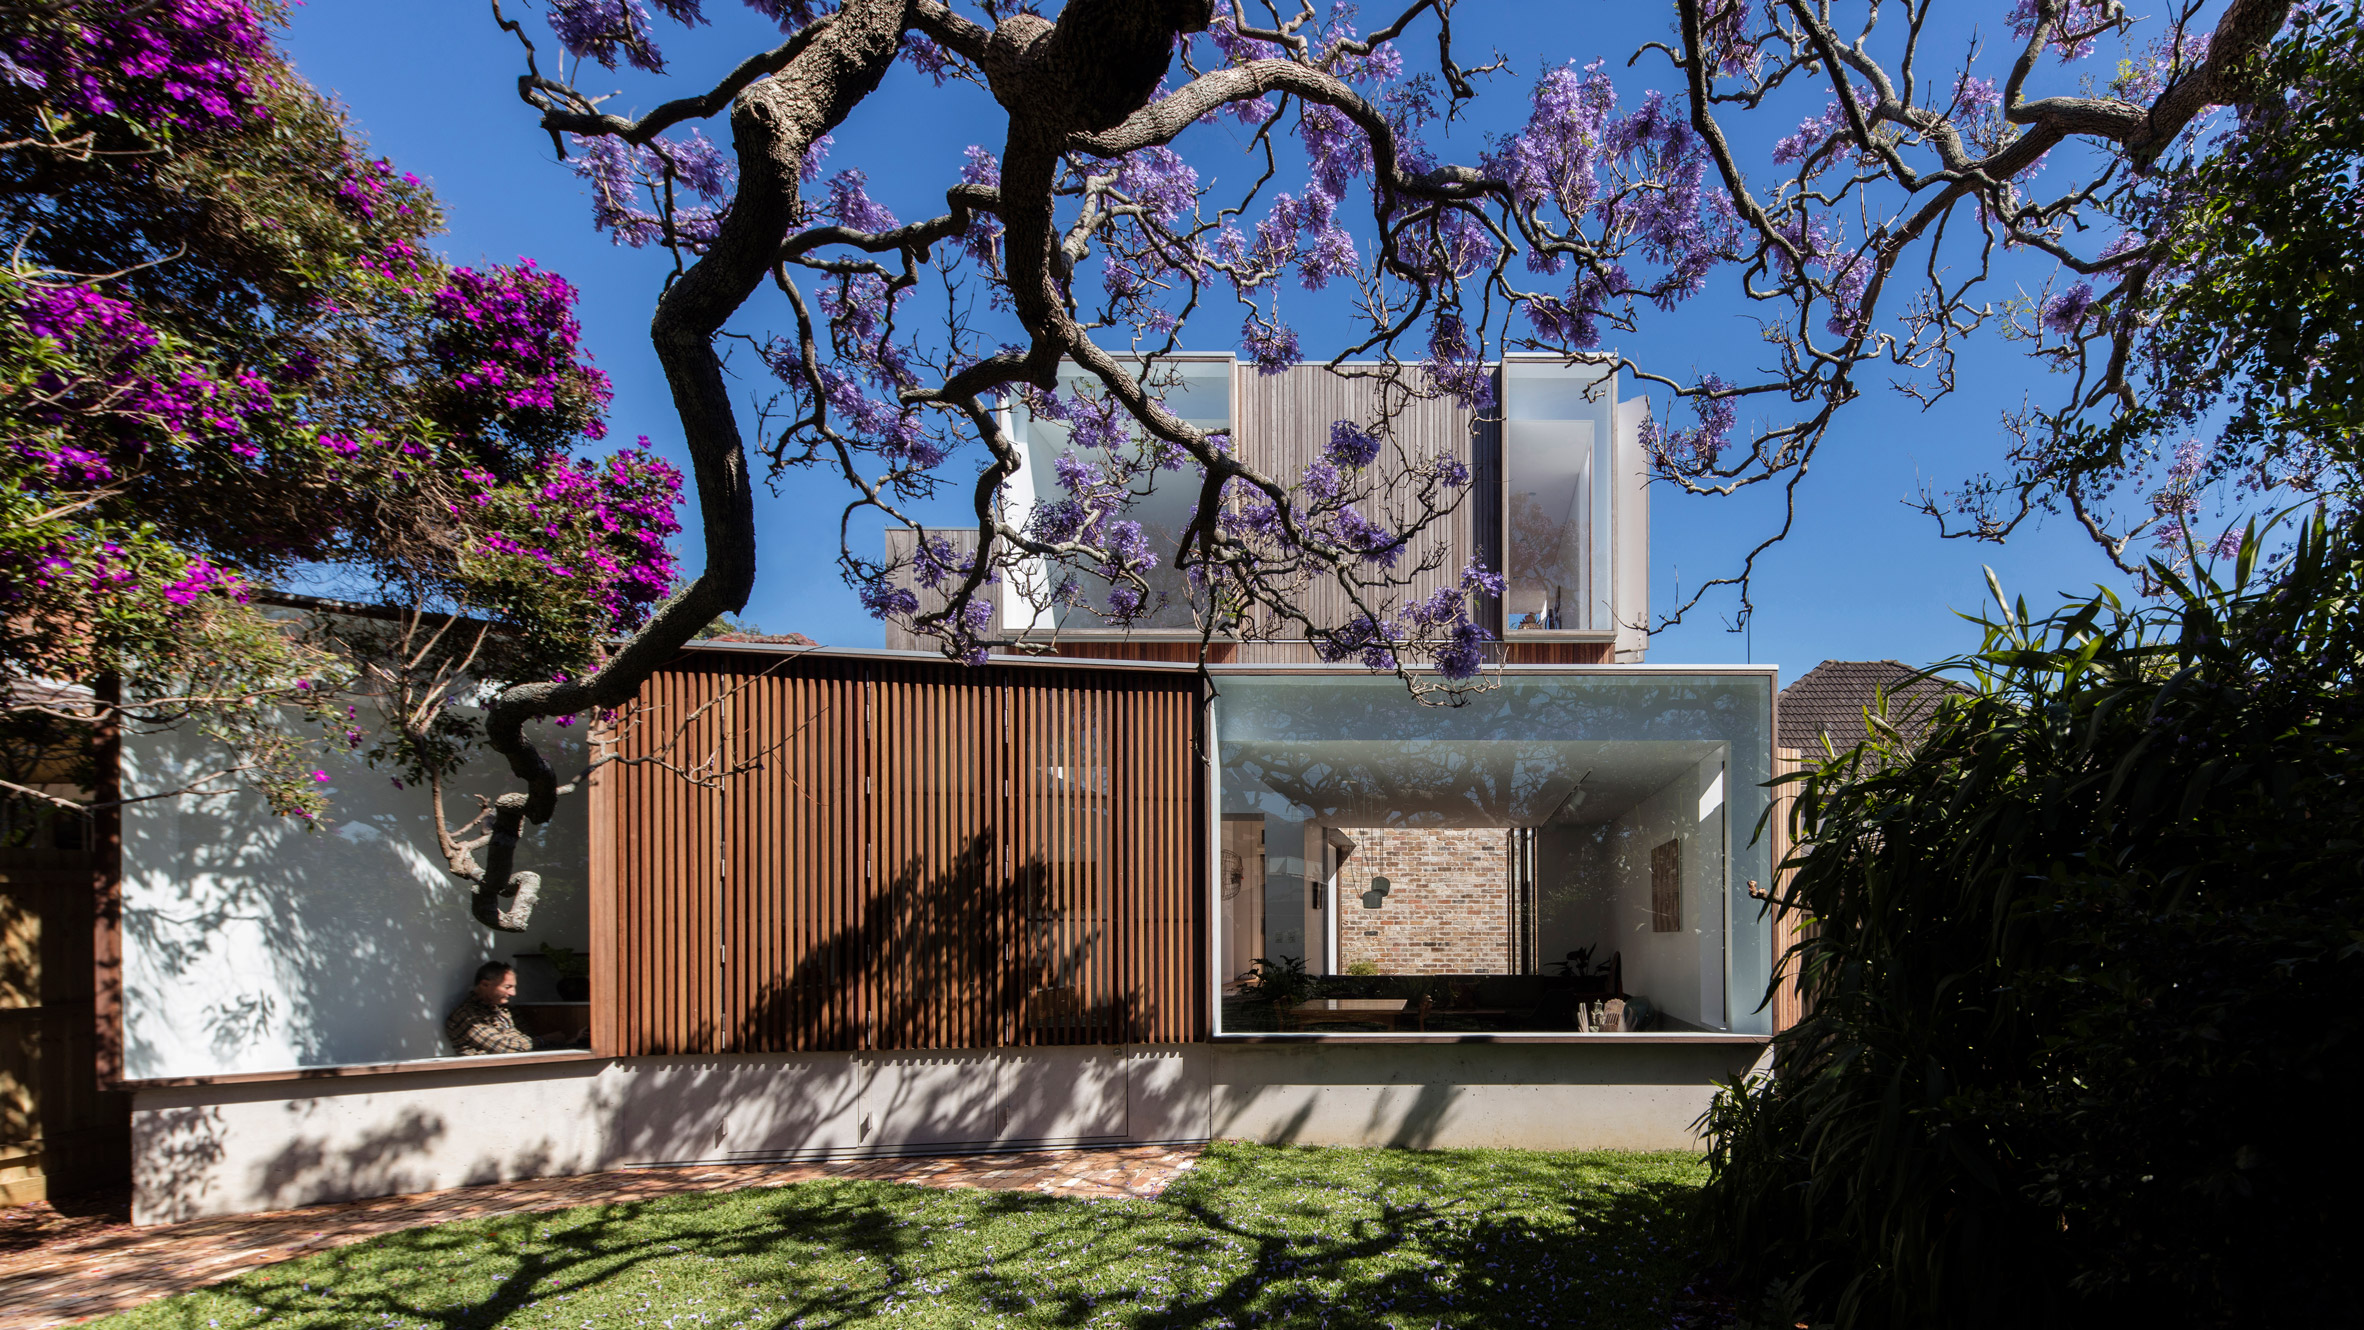 Shot of back of house, which is made up of stacked concrete boxes with large picture windows and a slatted wall. A large blooming tree's branches extend toward it.